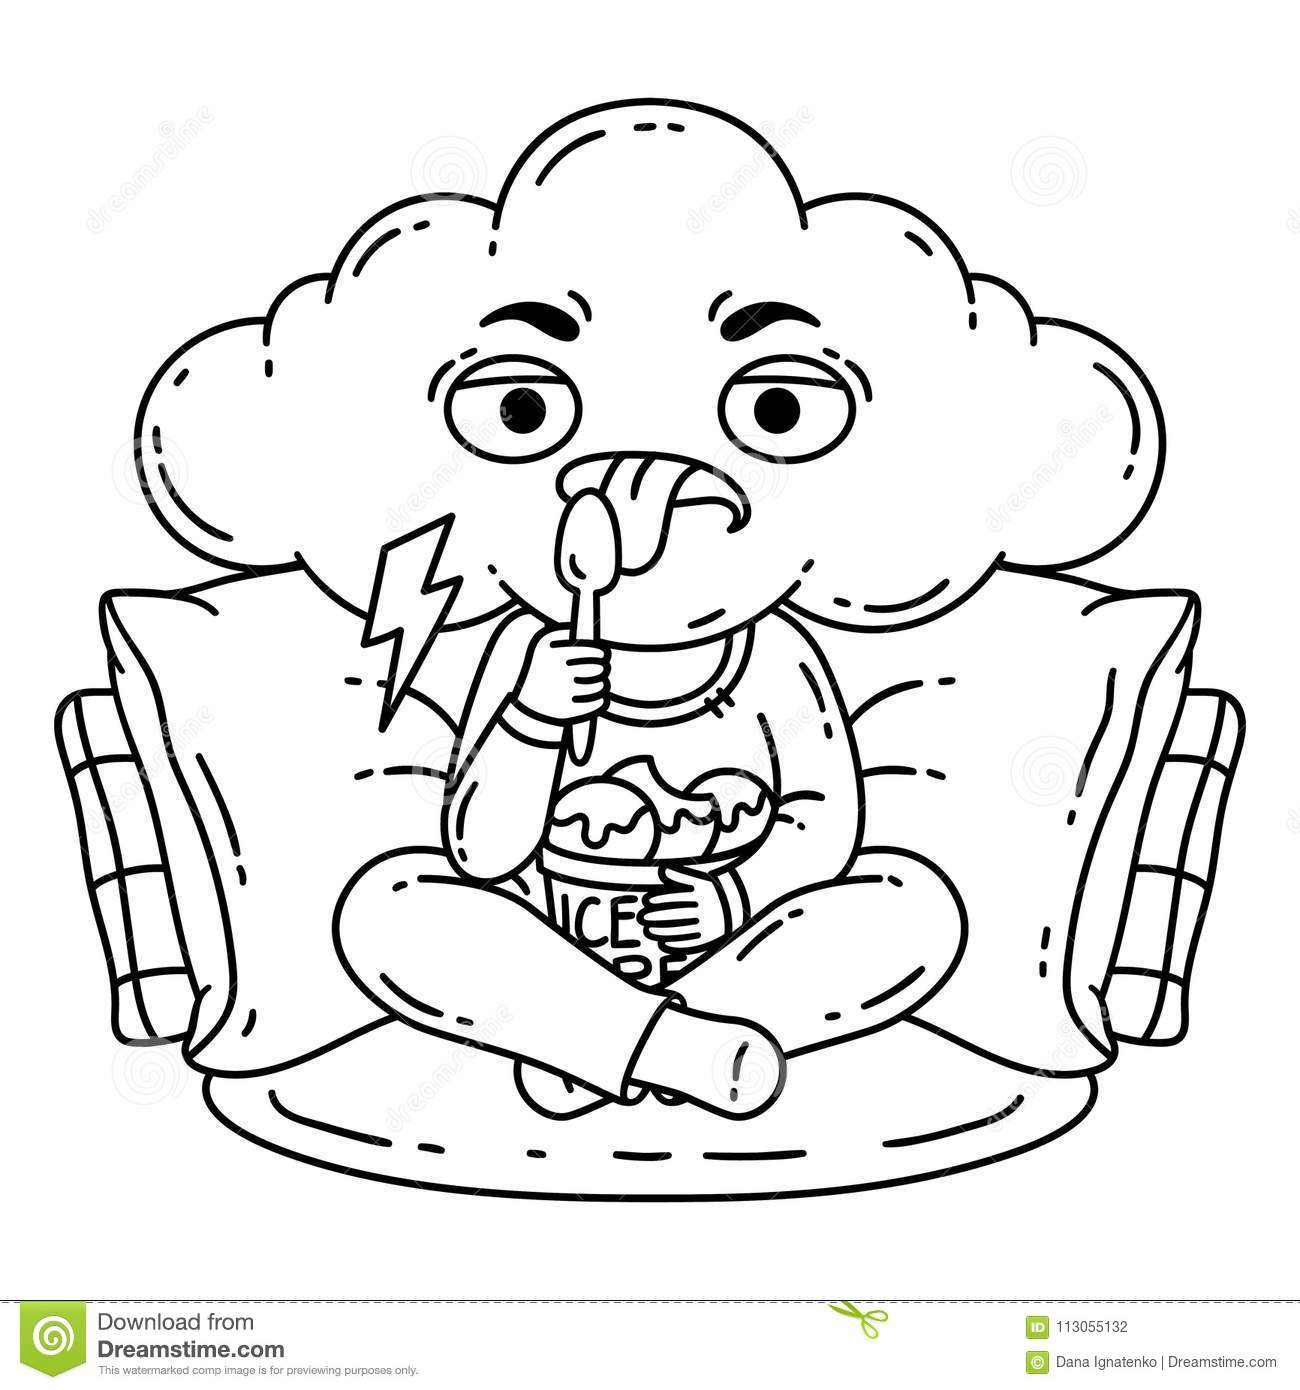 Frustrated, Bad Mood Person Eat Ice Cream. Stock Vector ...